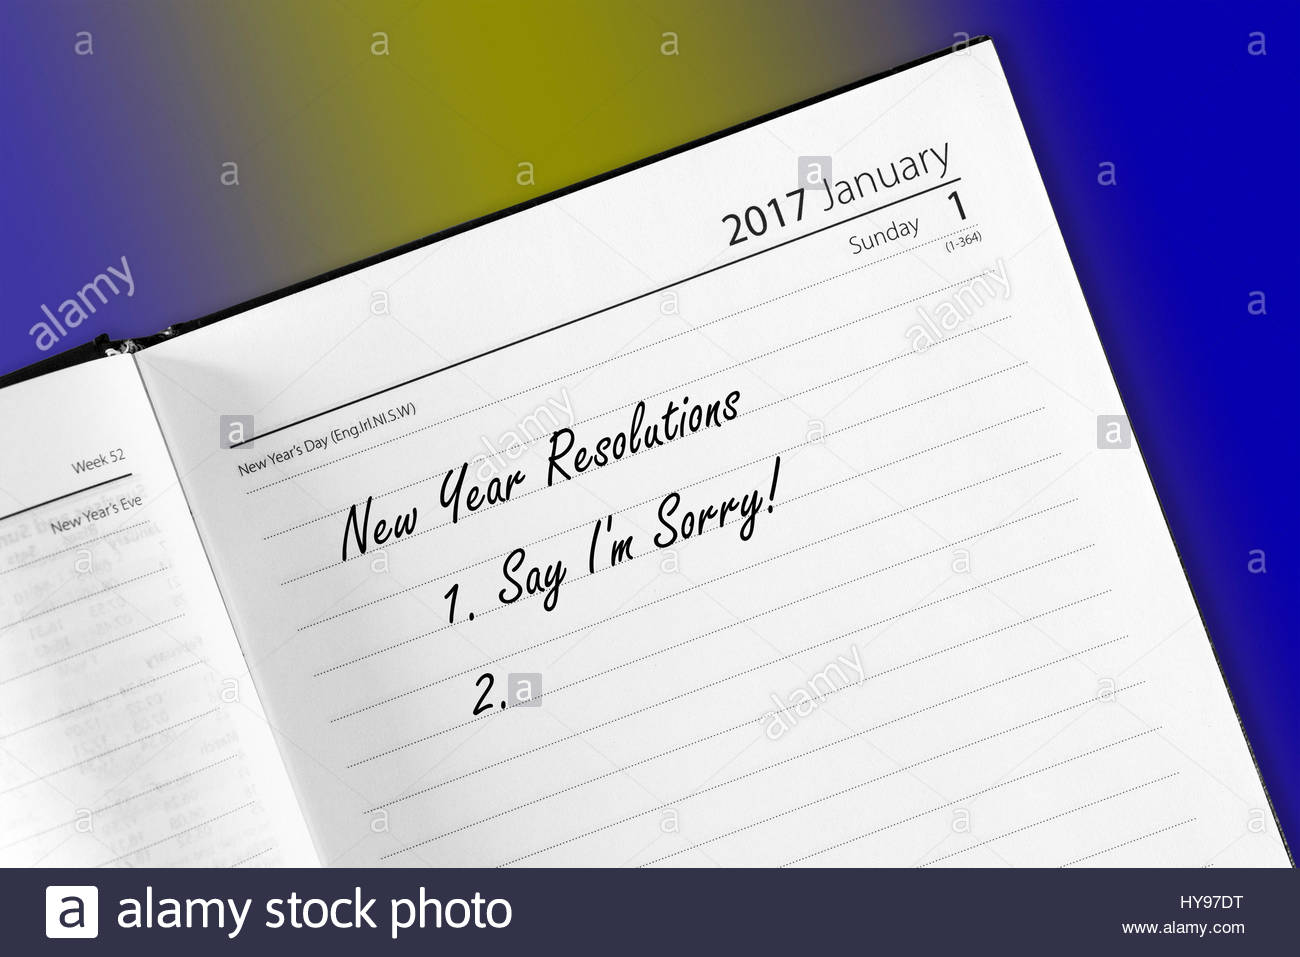 Say sorry, New Year Resolution Stock Photo: 137271732 - Alamy